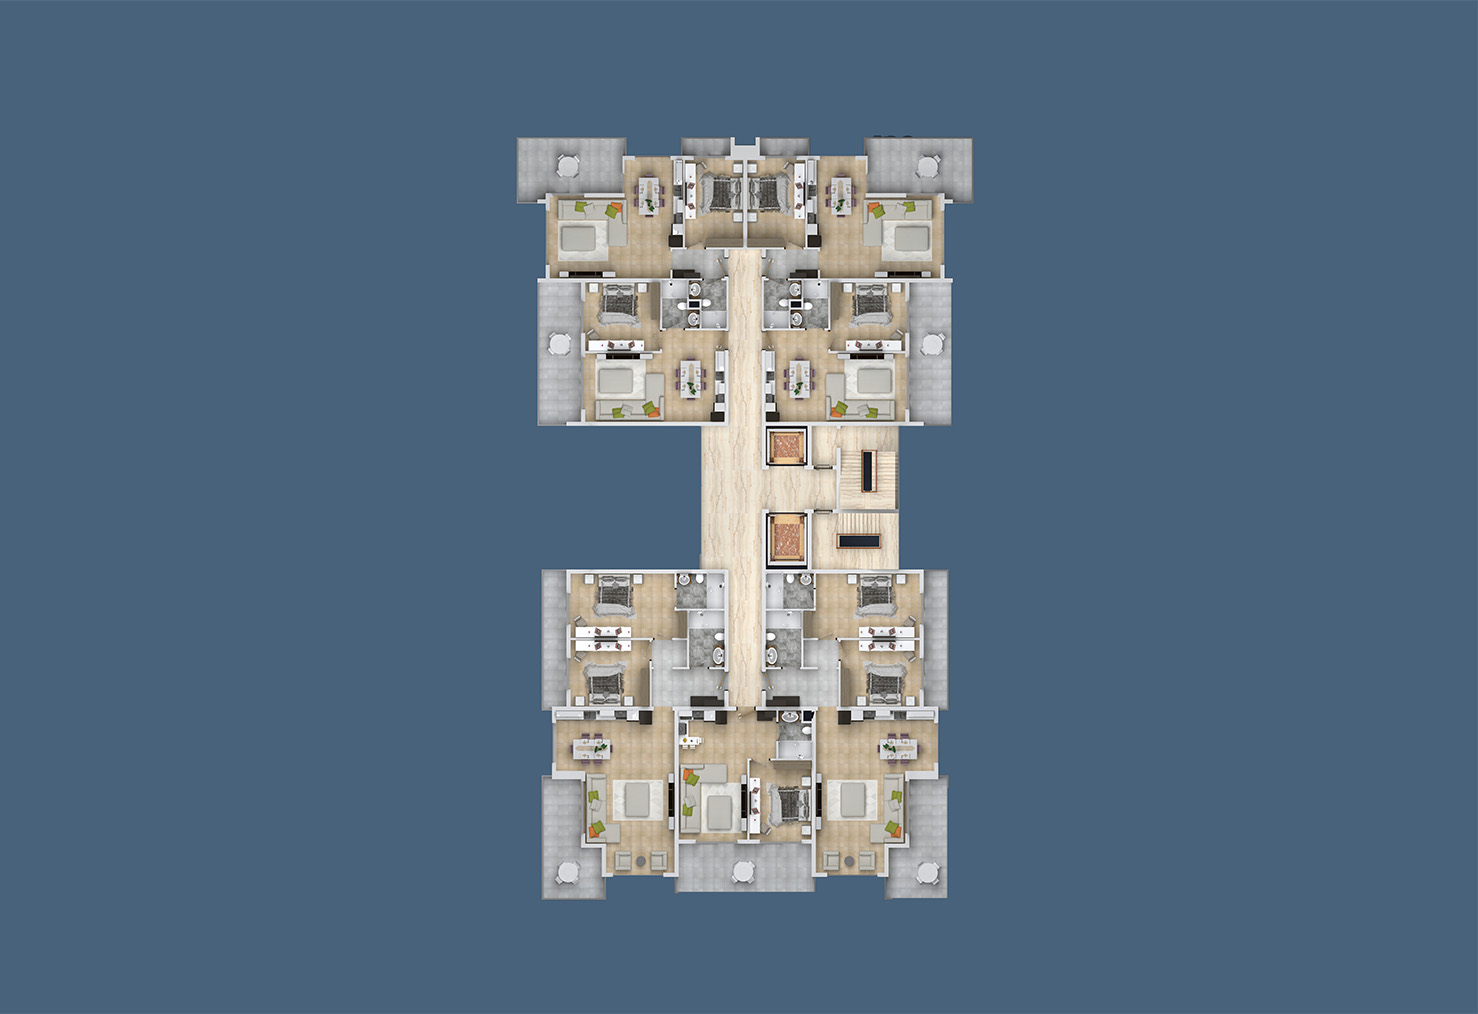 Floor plans of apartments 9 floor «A» Yekta Kingdom Trade Center